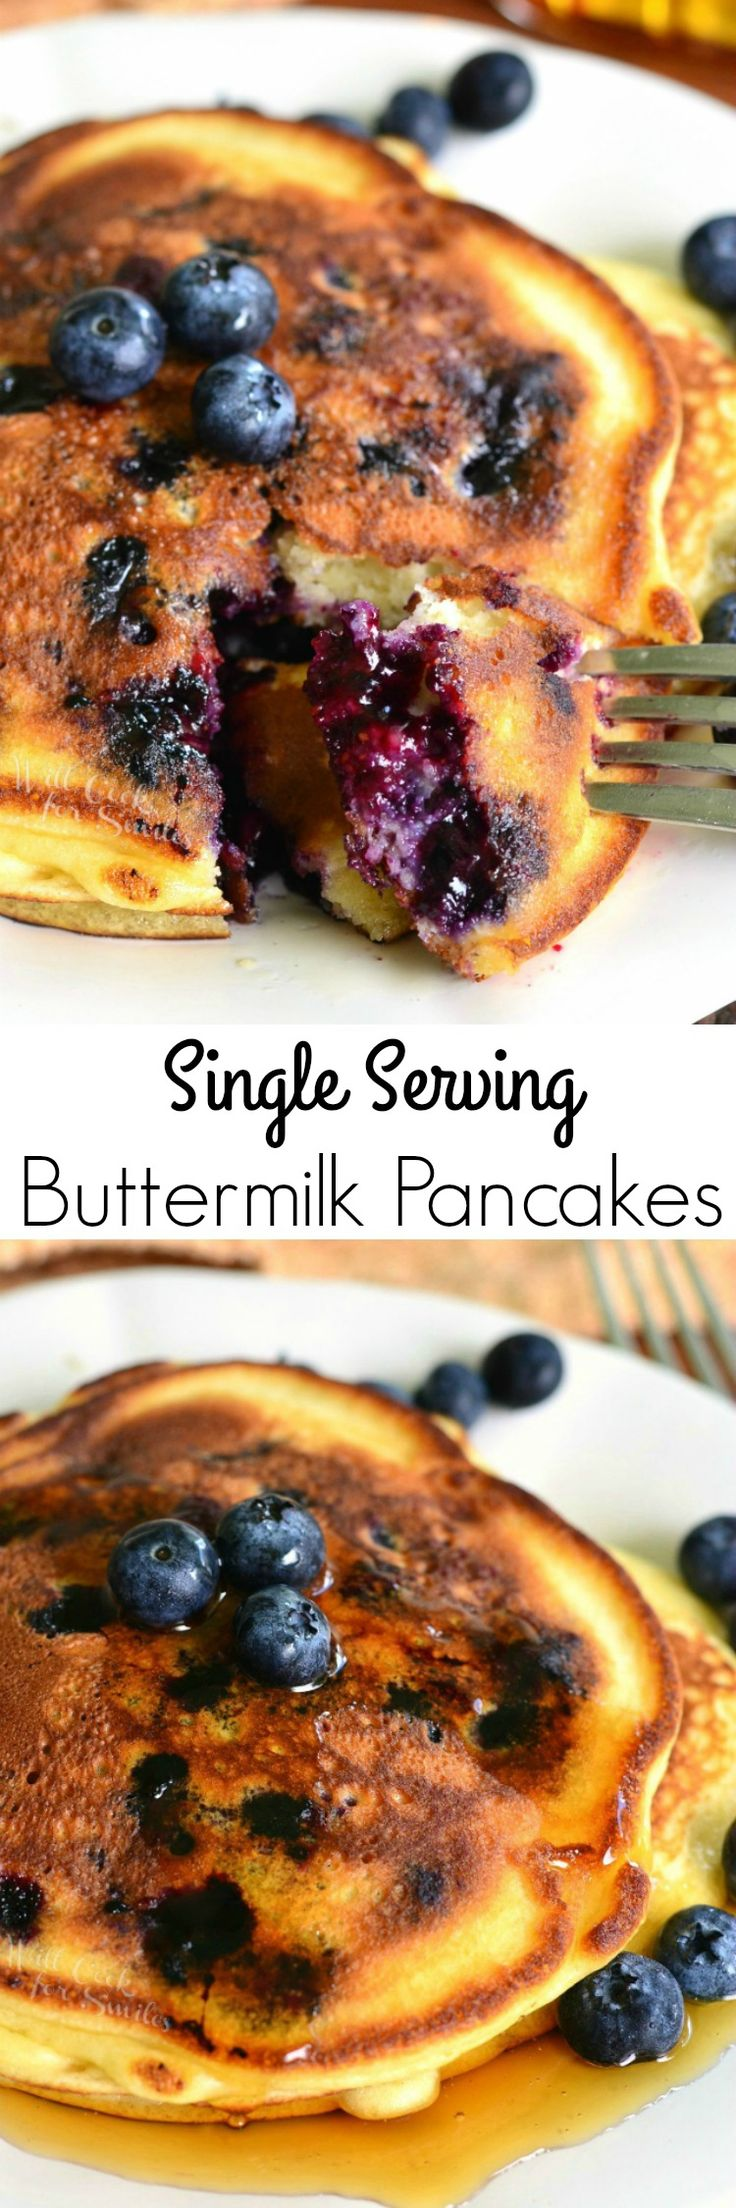 Single Serving Buttermilk Pancakes. Soft and fluffy buttermilk pancakes made…